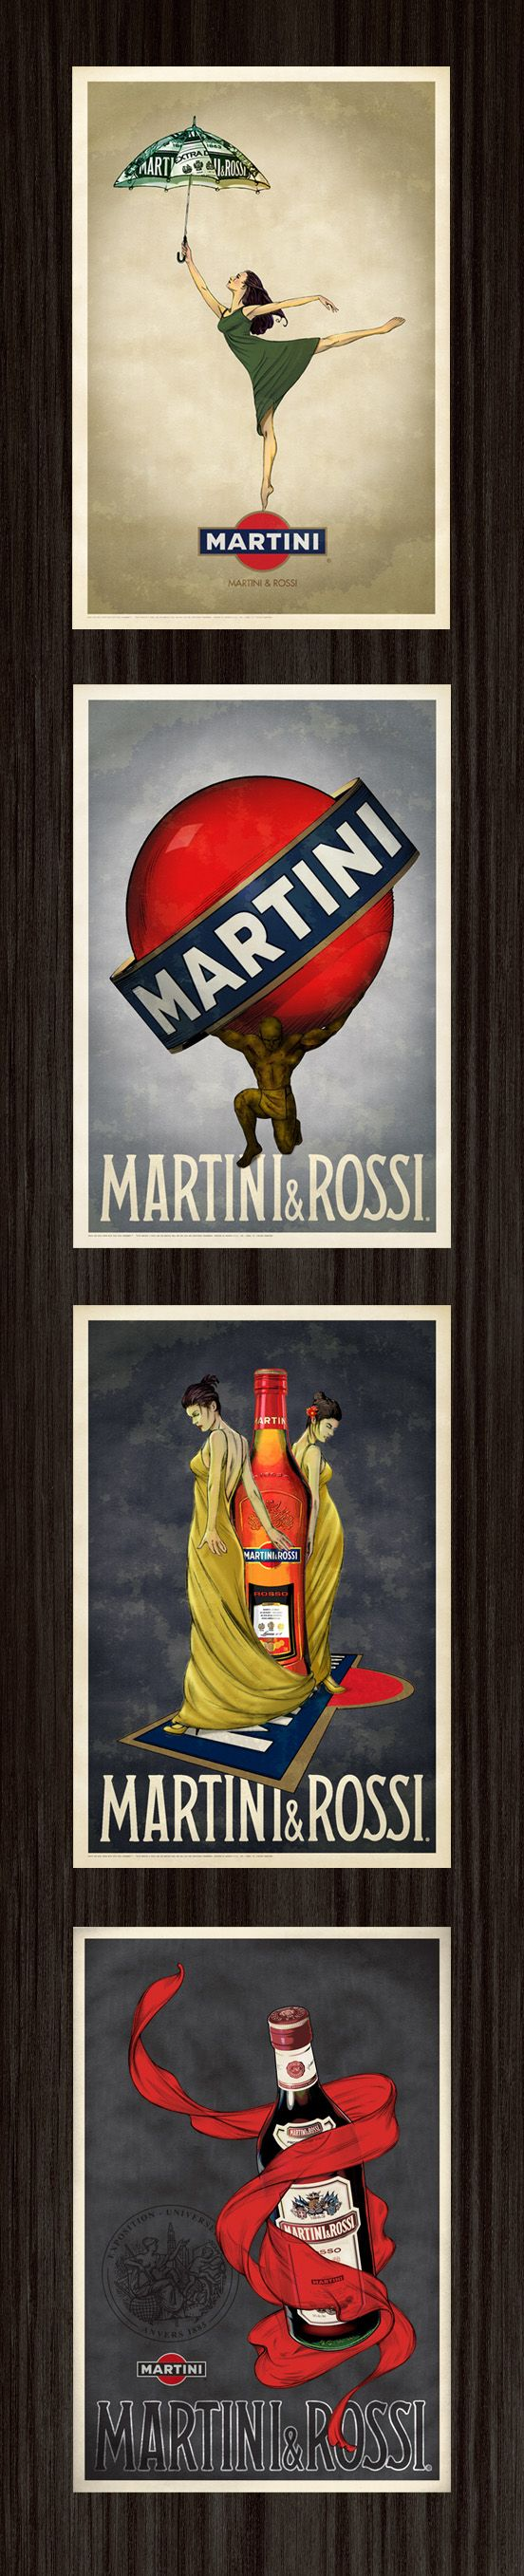 MARTINI & ROSSI PRINTS by brian clever, via Behance